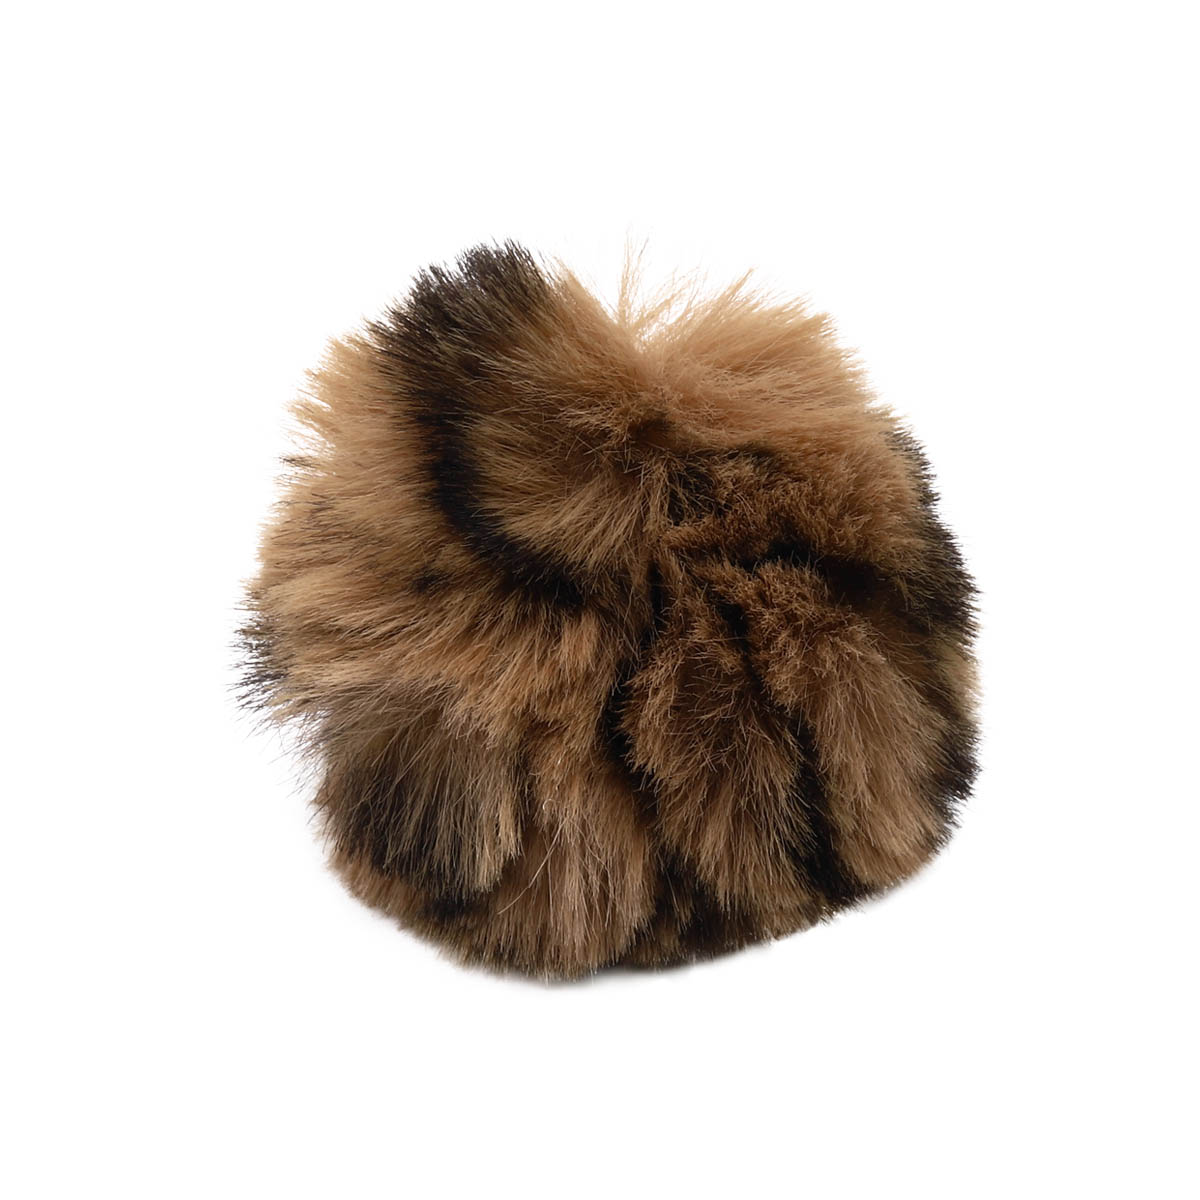 Ar528 Pompon Artificial Fur, Leopard, 5 Cm 2 Pcs/pack (beige)